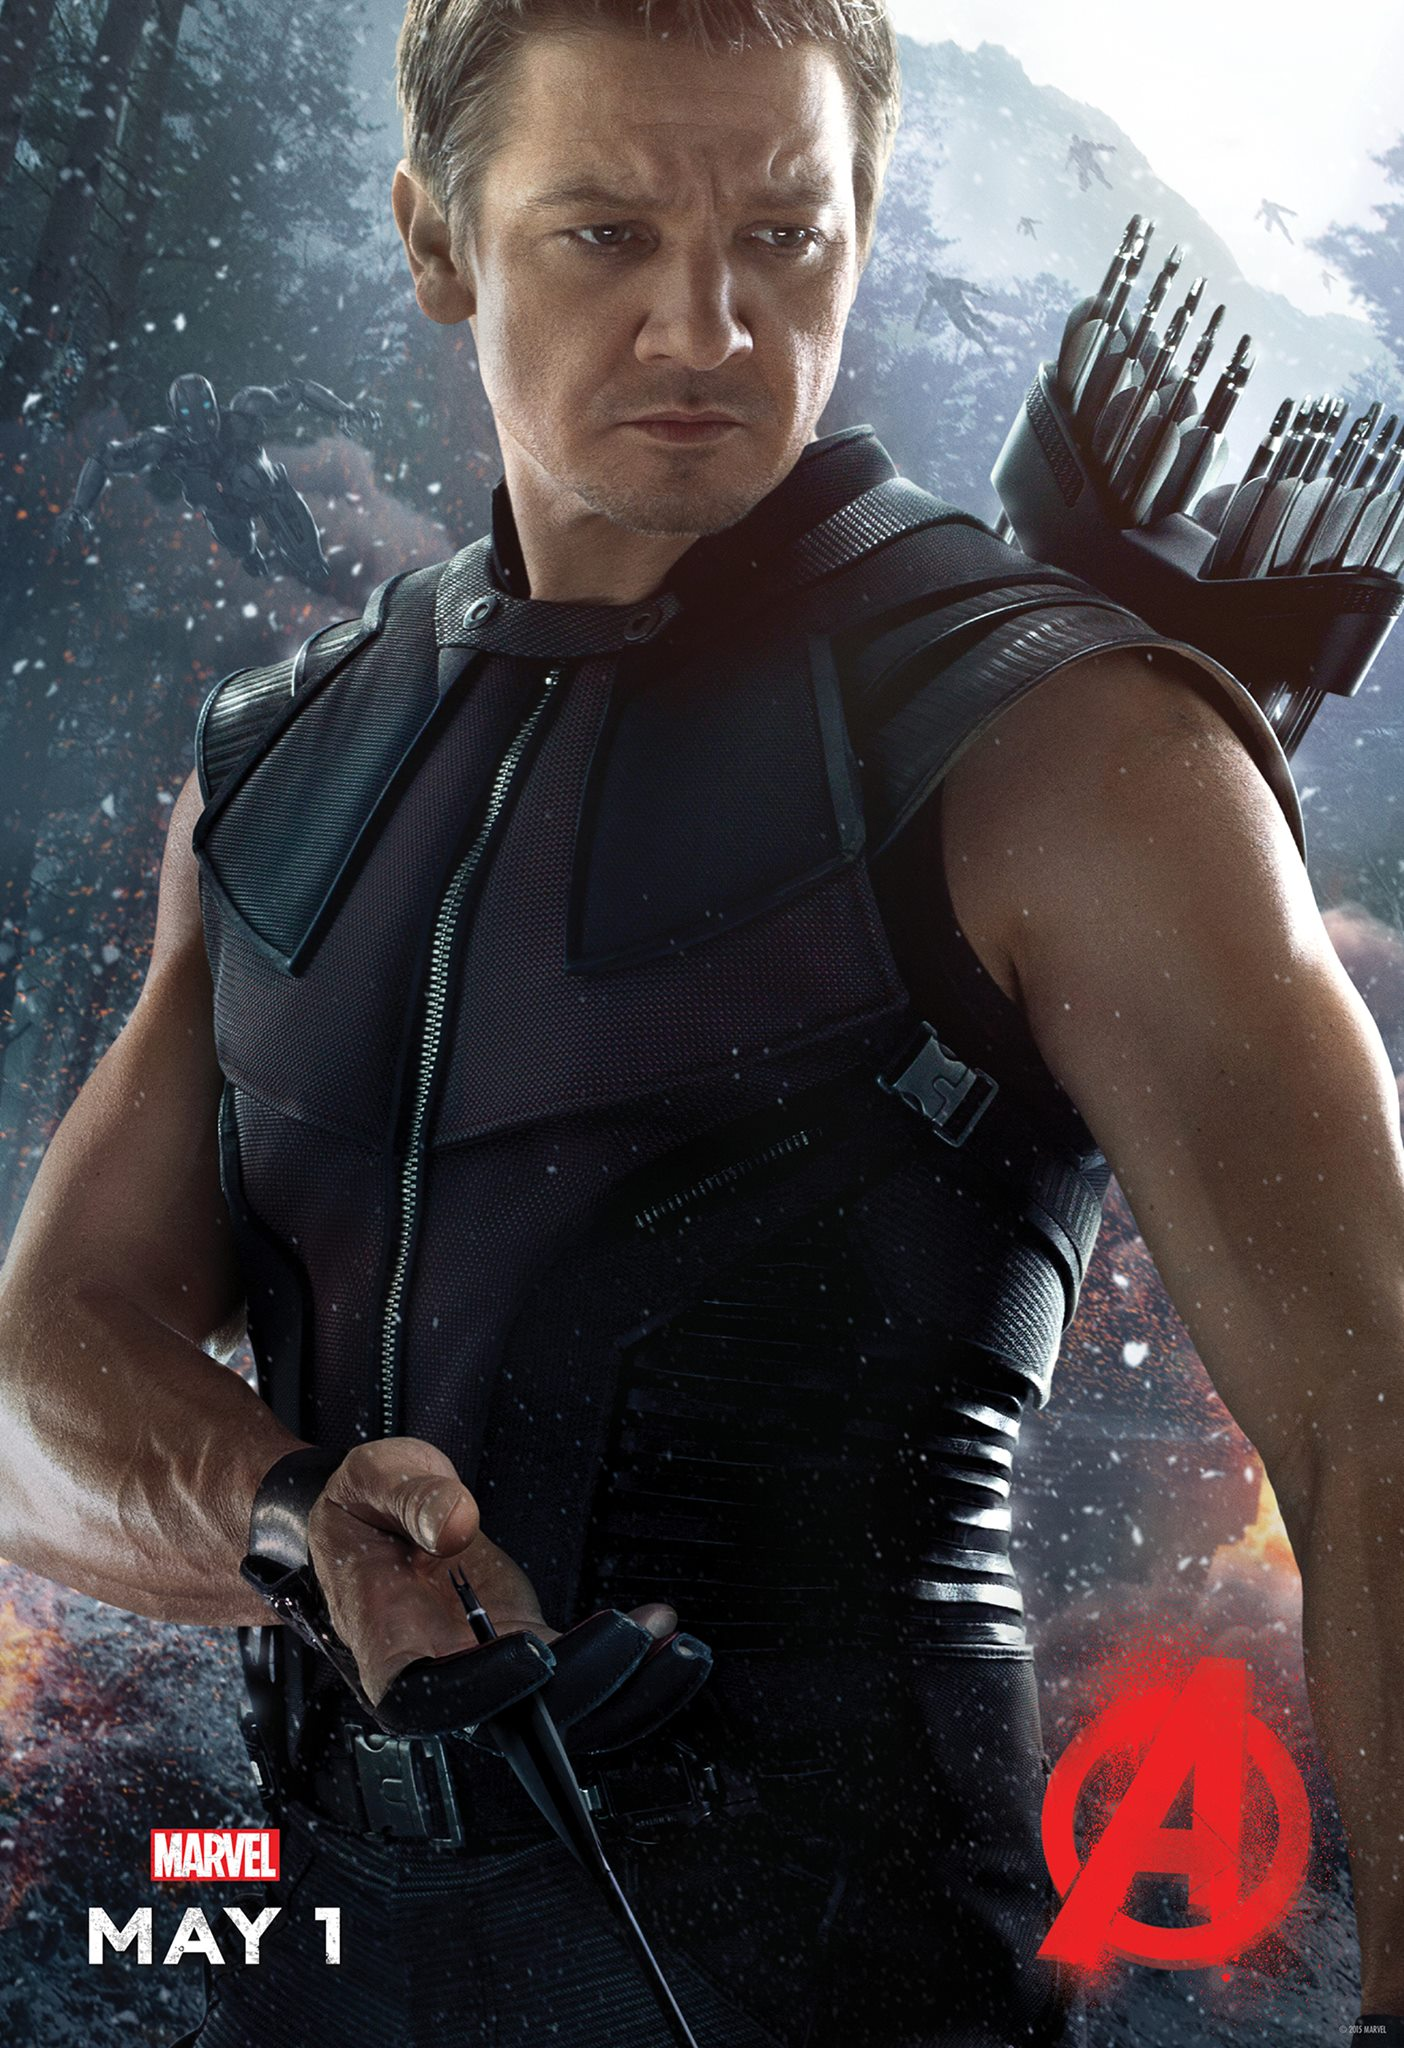 Avengers: Age of Ultron Hawkeye Poster